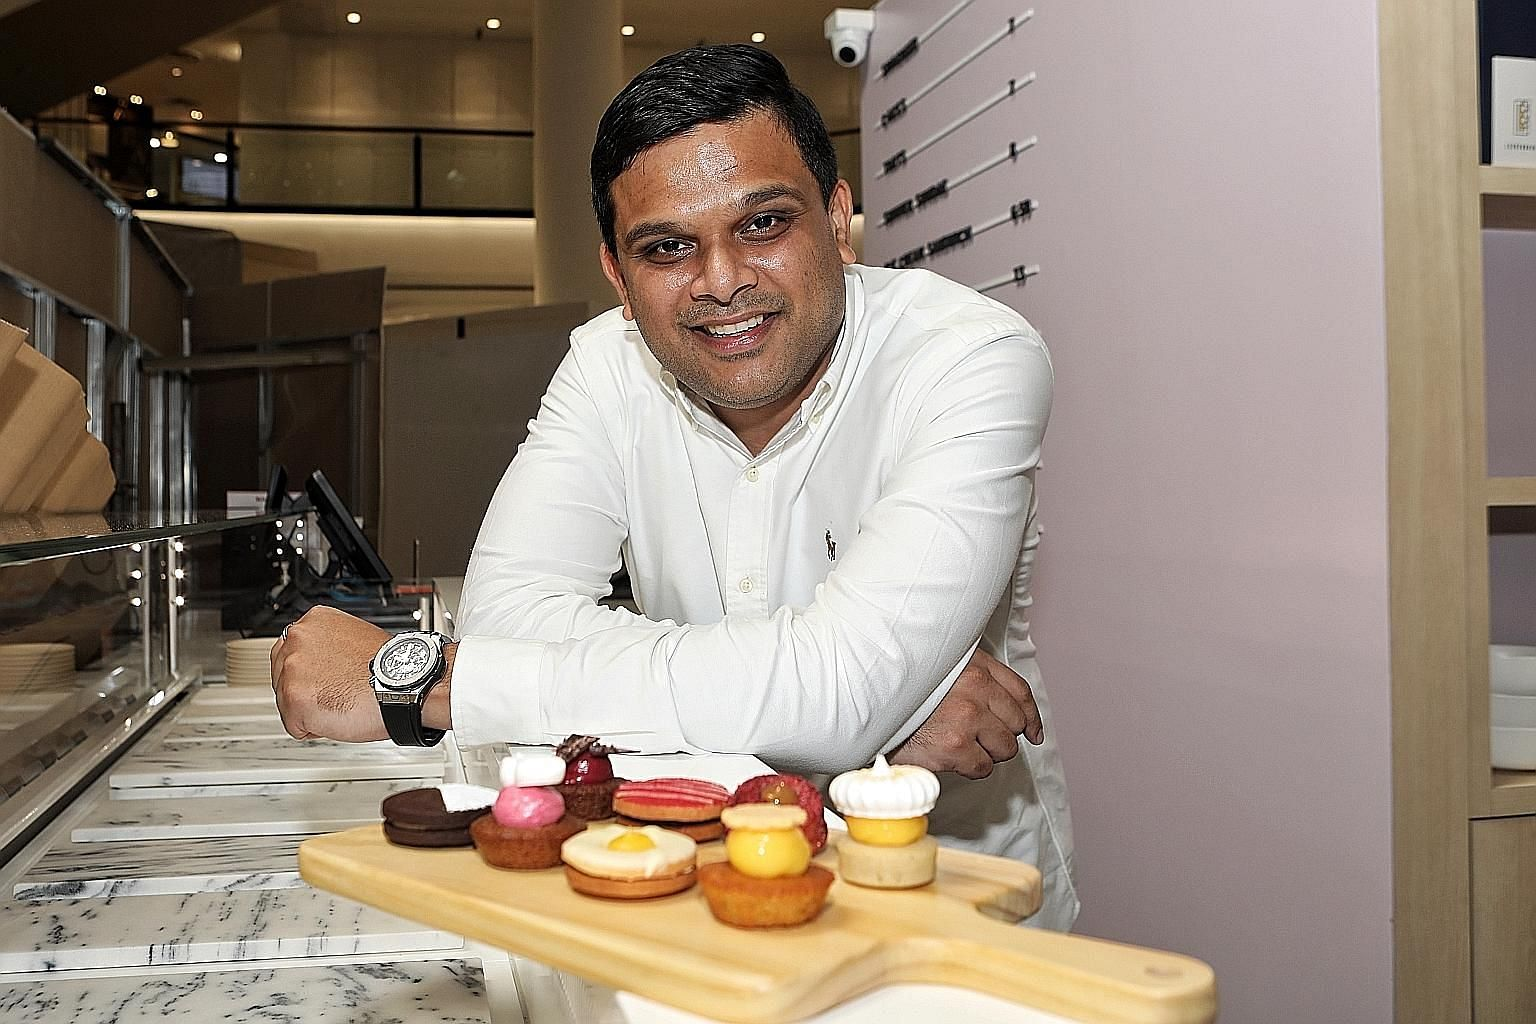 Mr Vijay Pillai of lifestyle company Caerus Holding is bringing in Danish pastry shop Leckerbaer (above) and Luke's Lobster of New York.